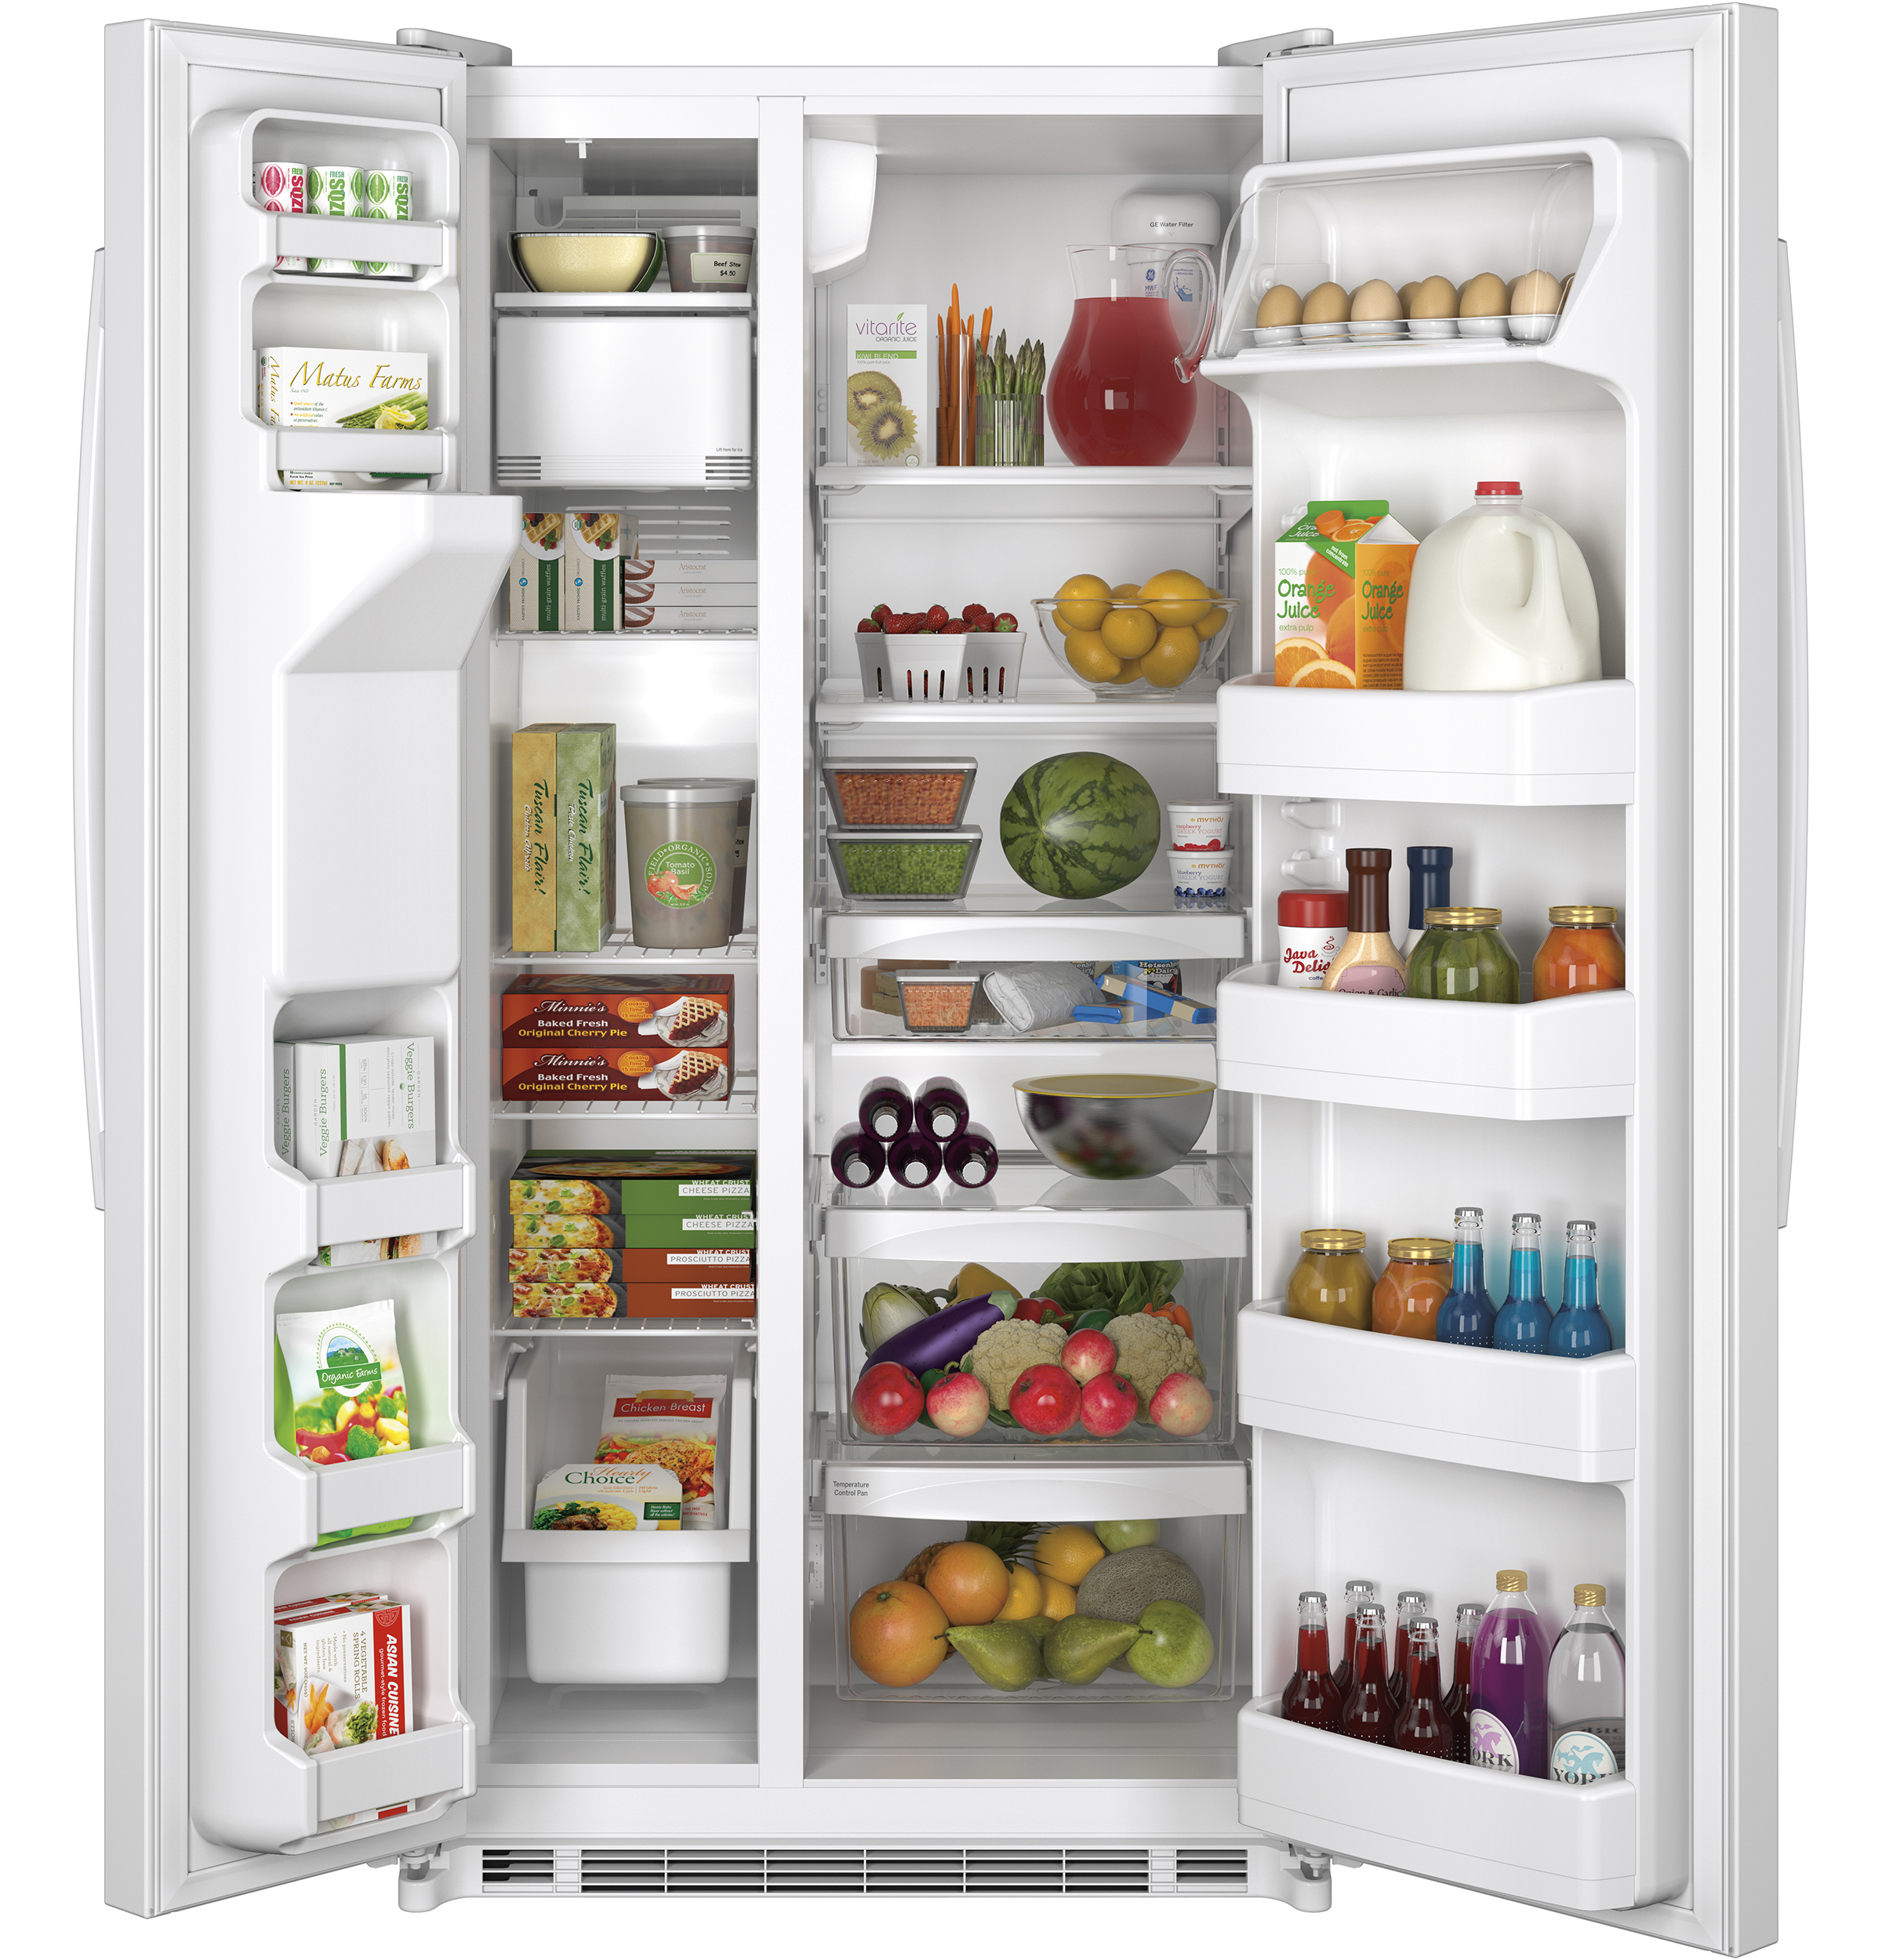 Ge Energy Star 218 Cu Ft Side By Refrigerator Gse22ethww Wire Diagram For Model 22 25 Product Image